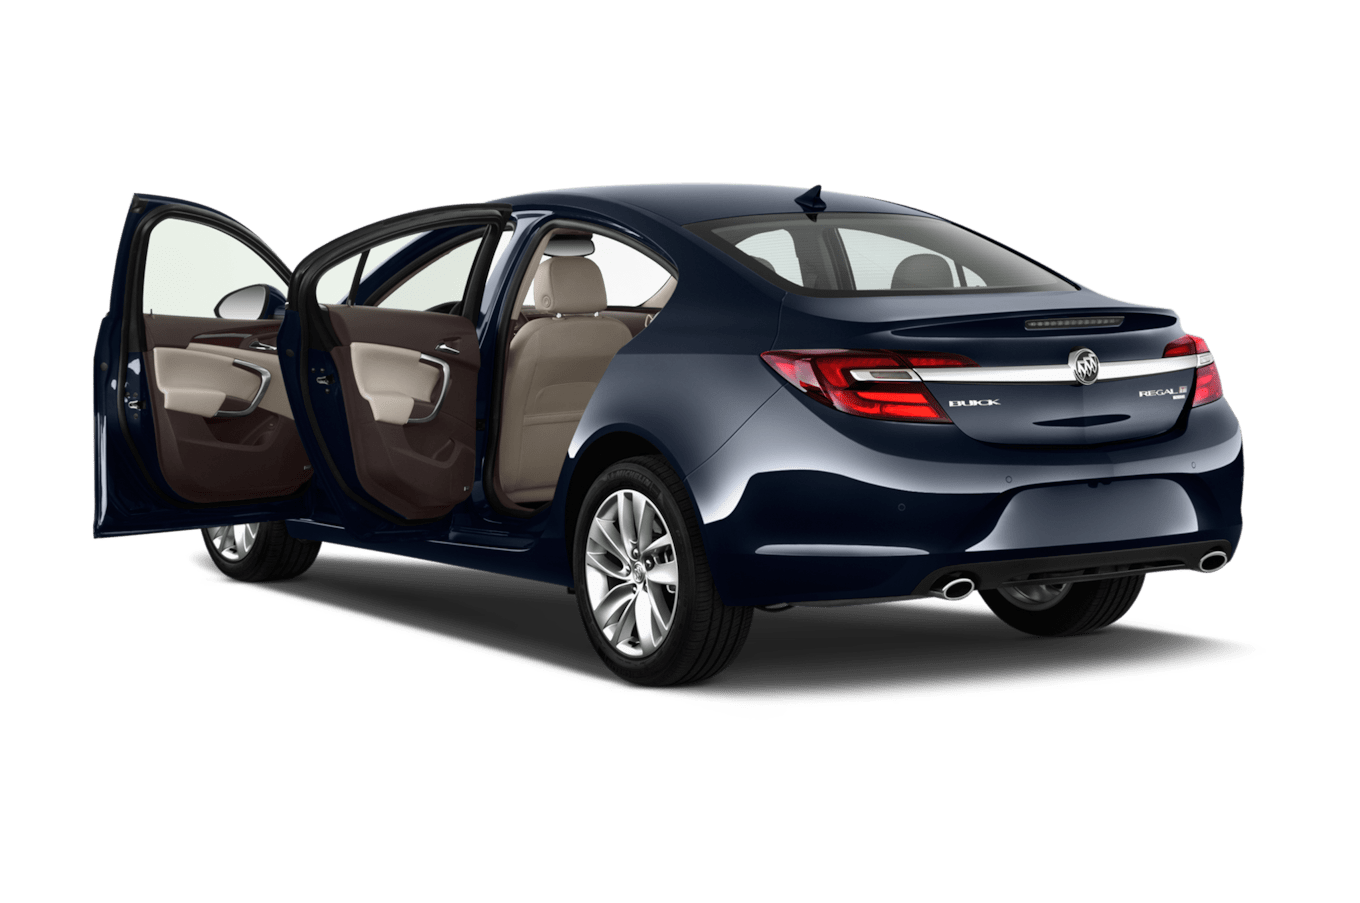 Regal Led Panel 2017 Buick Regal Reviews Research Regal Prices Specs Motortrend